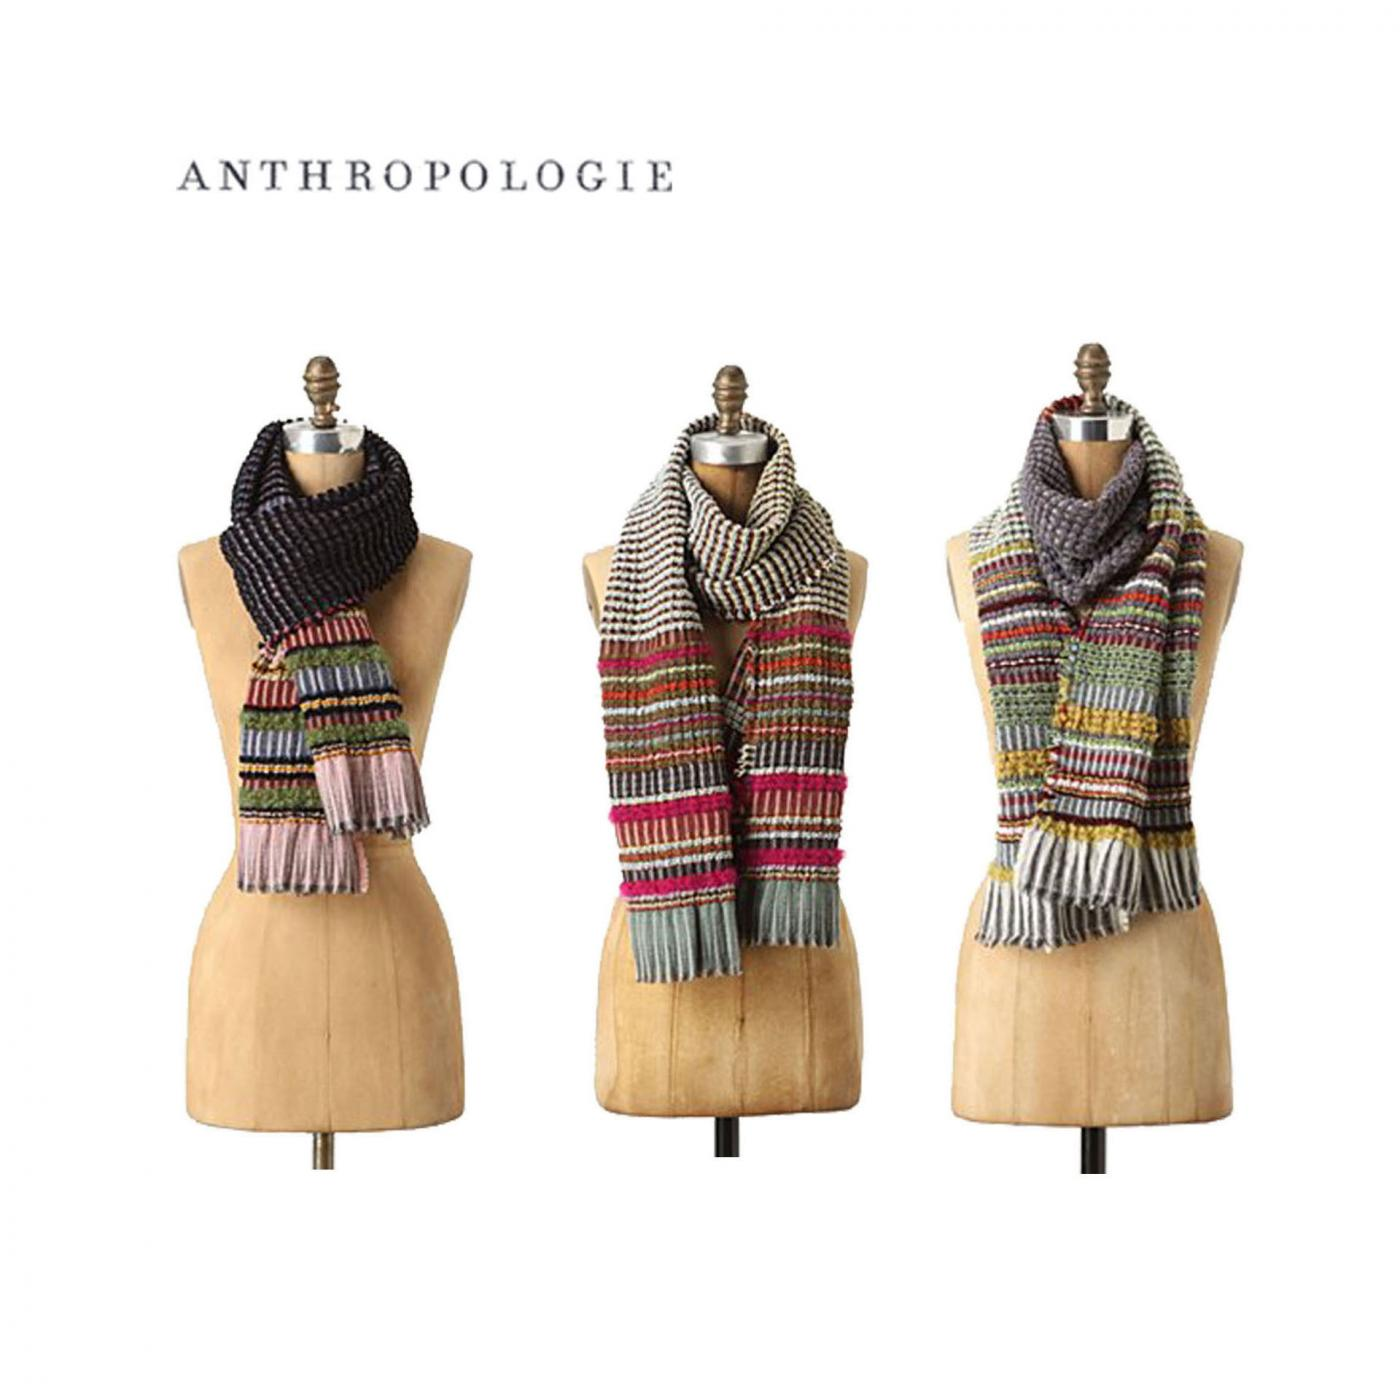 Anthropologie – Chenille wraps